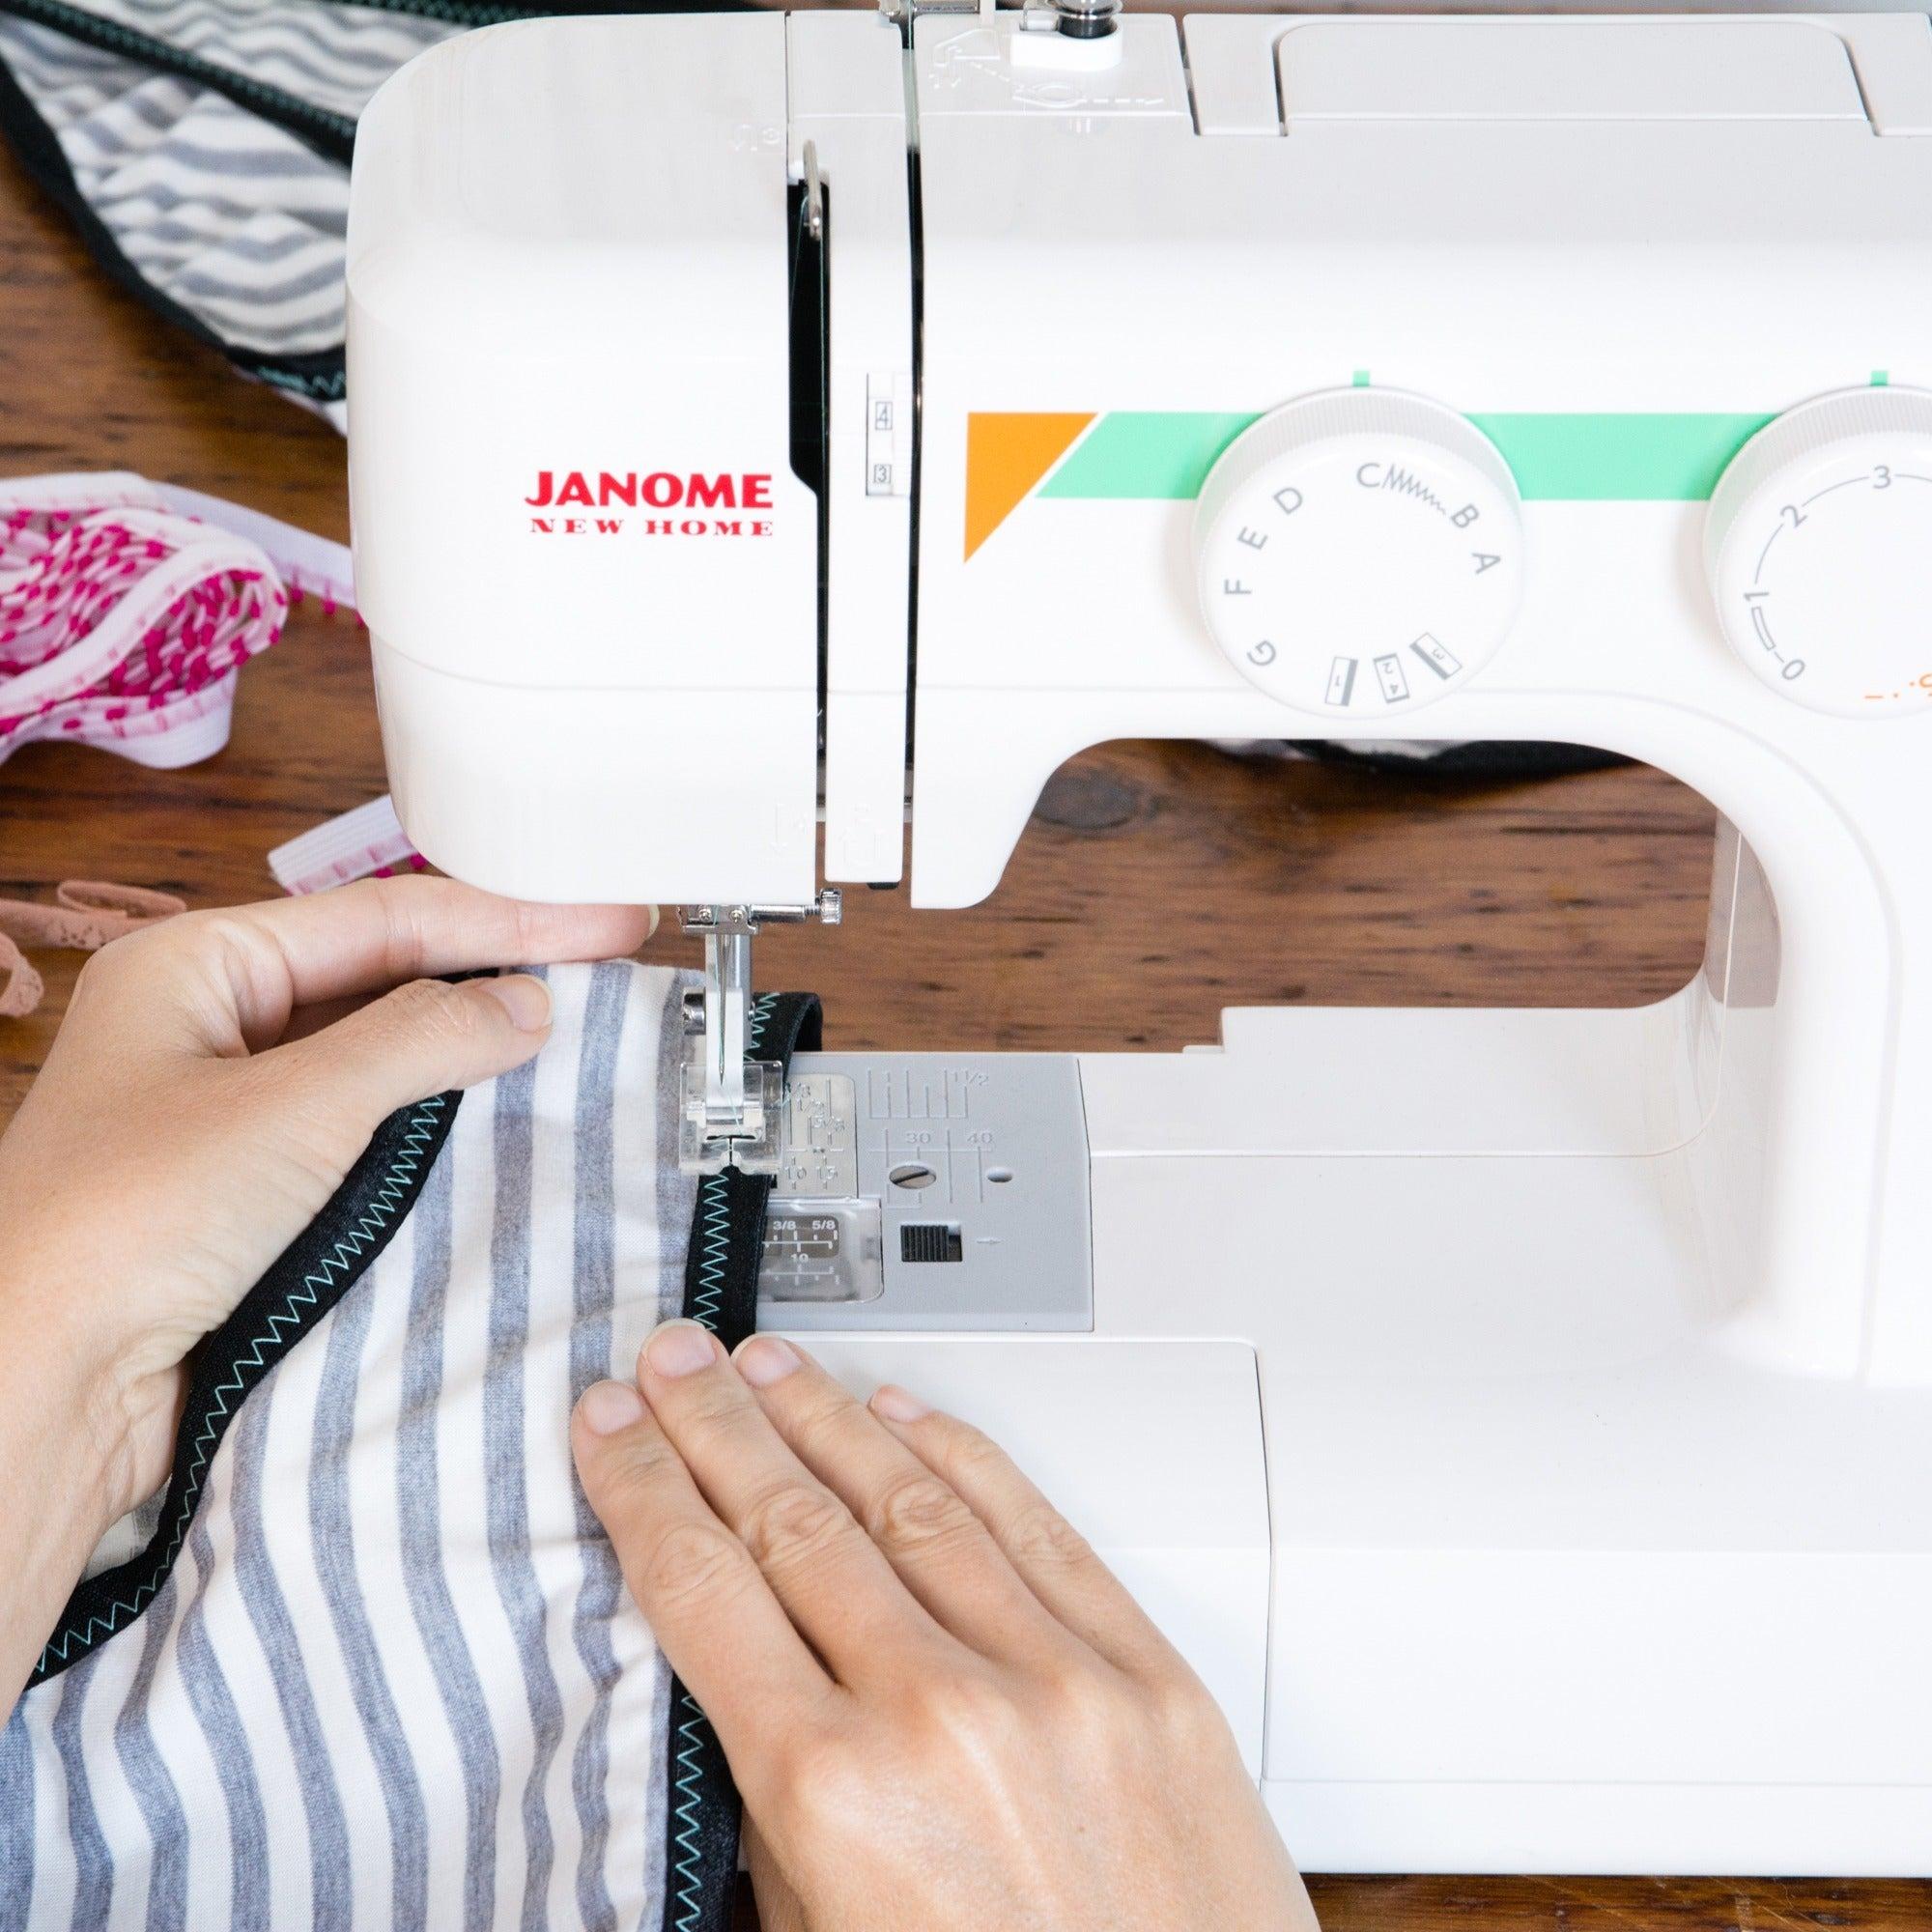 Janome MOD-15 Easy-to-Use Sewing Machine with 15 Stitches...